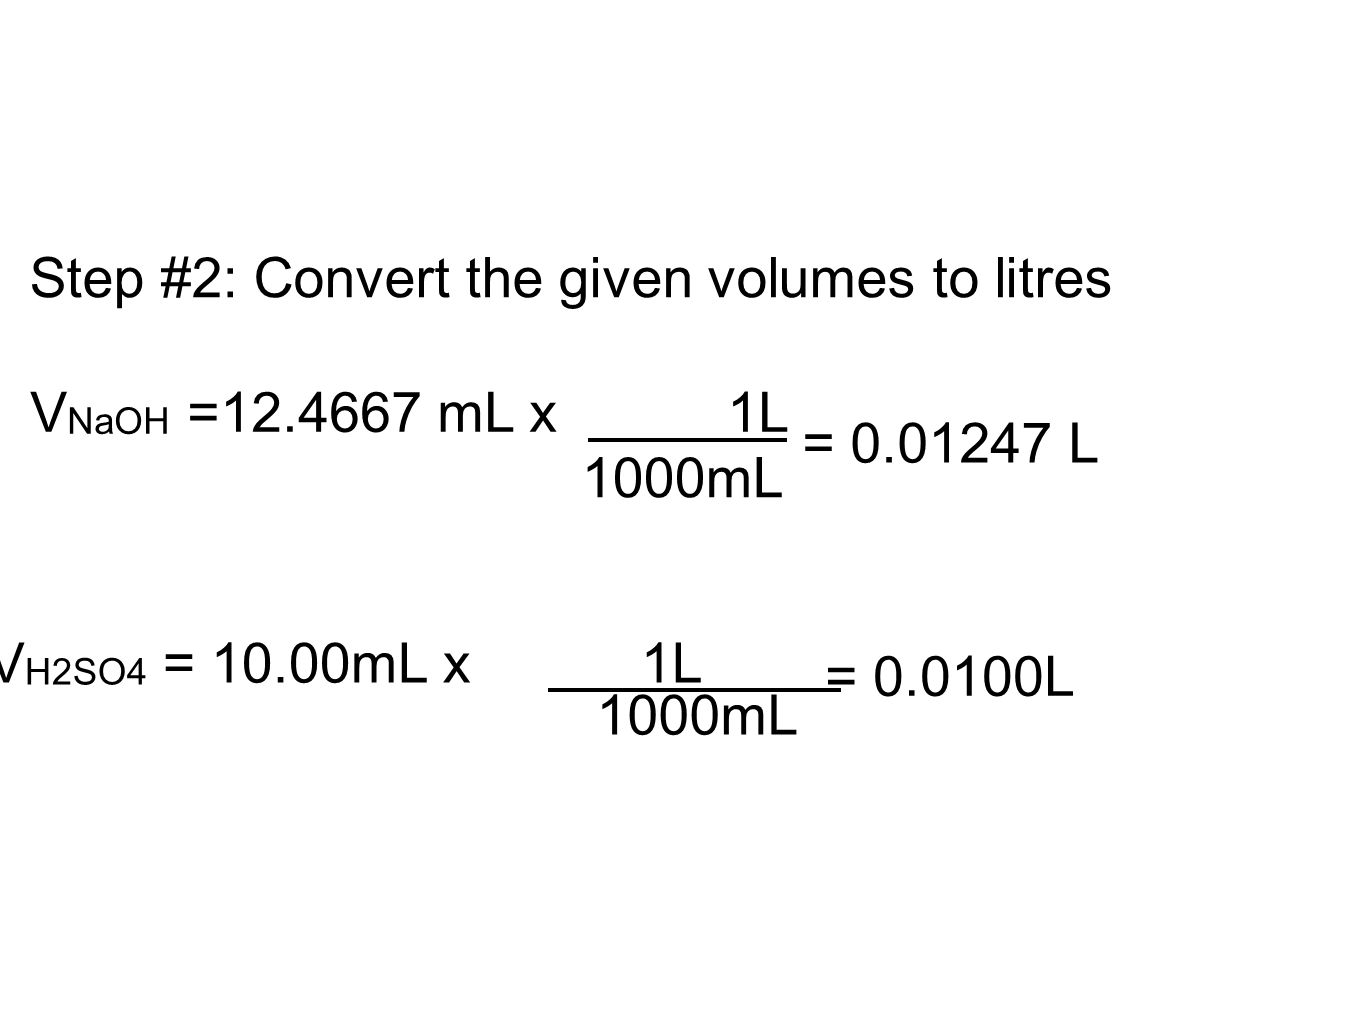 Step #2: Convert the given volumes to litres